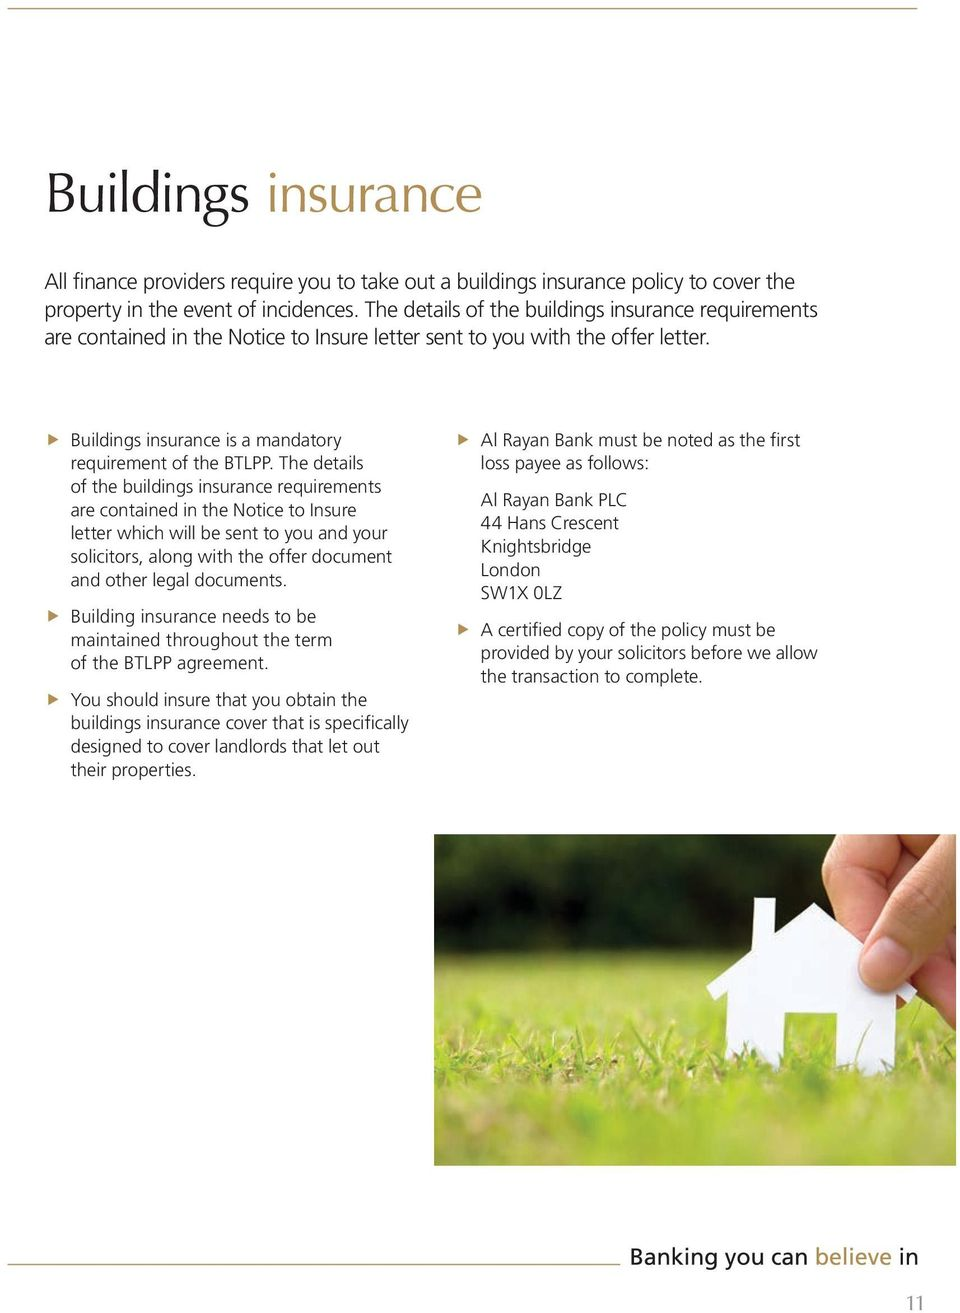 The details of the buildings insurance requirements are contained in the Notice to Insure letter which will be sent to you and your solicitors, along with the oer document and other legal documents.